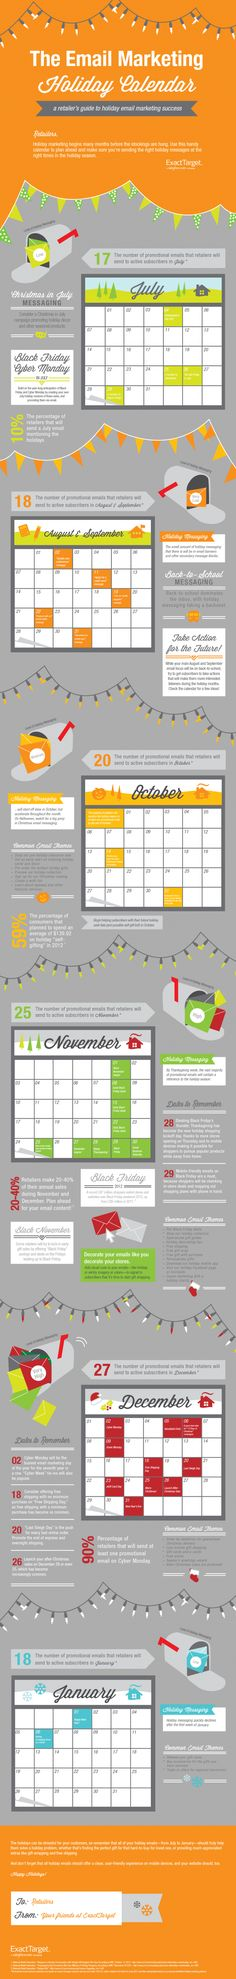 The Email Marketing Holiday Calendar